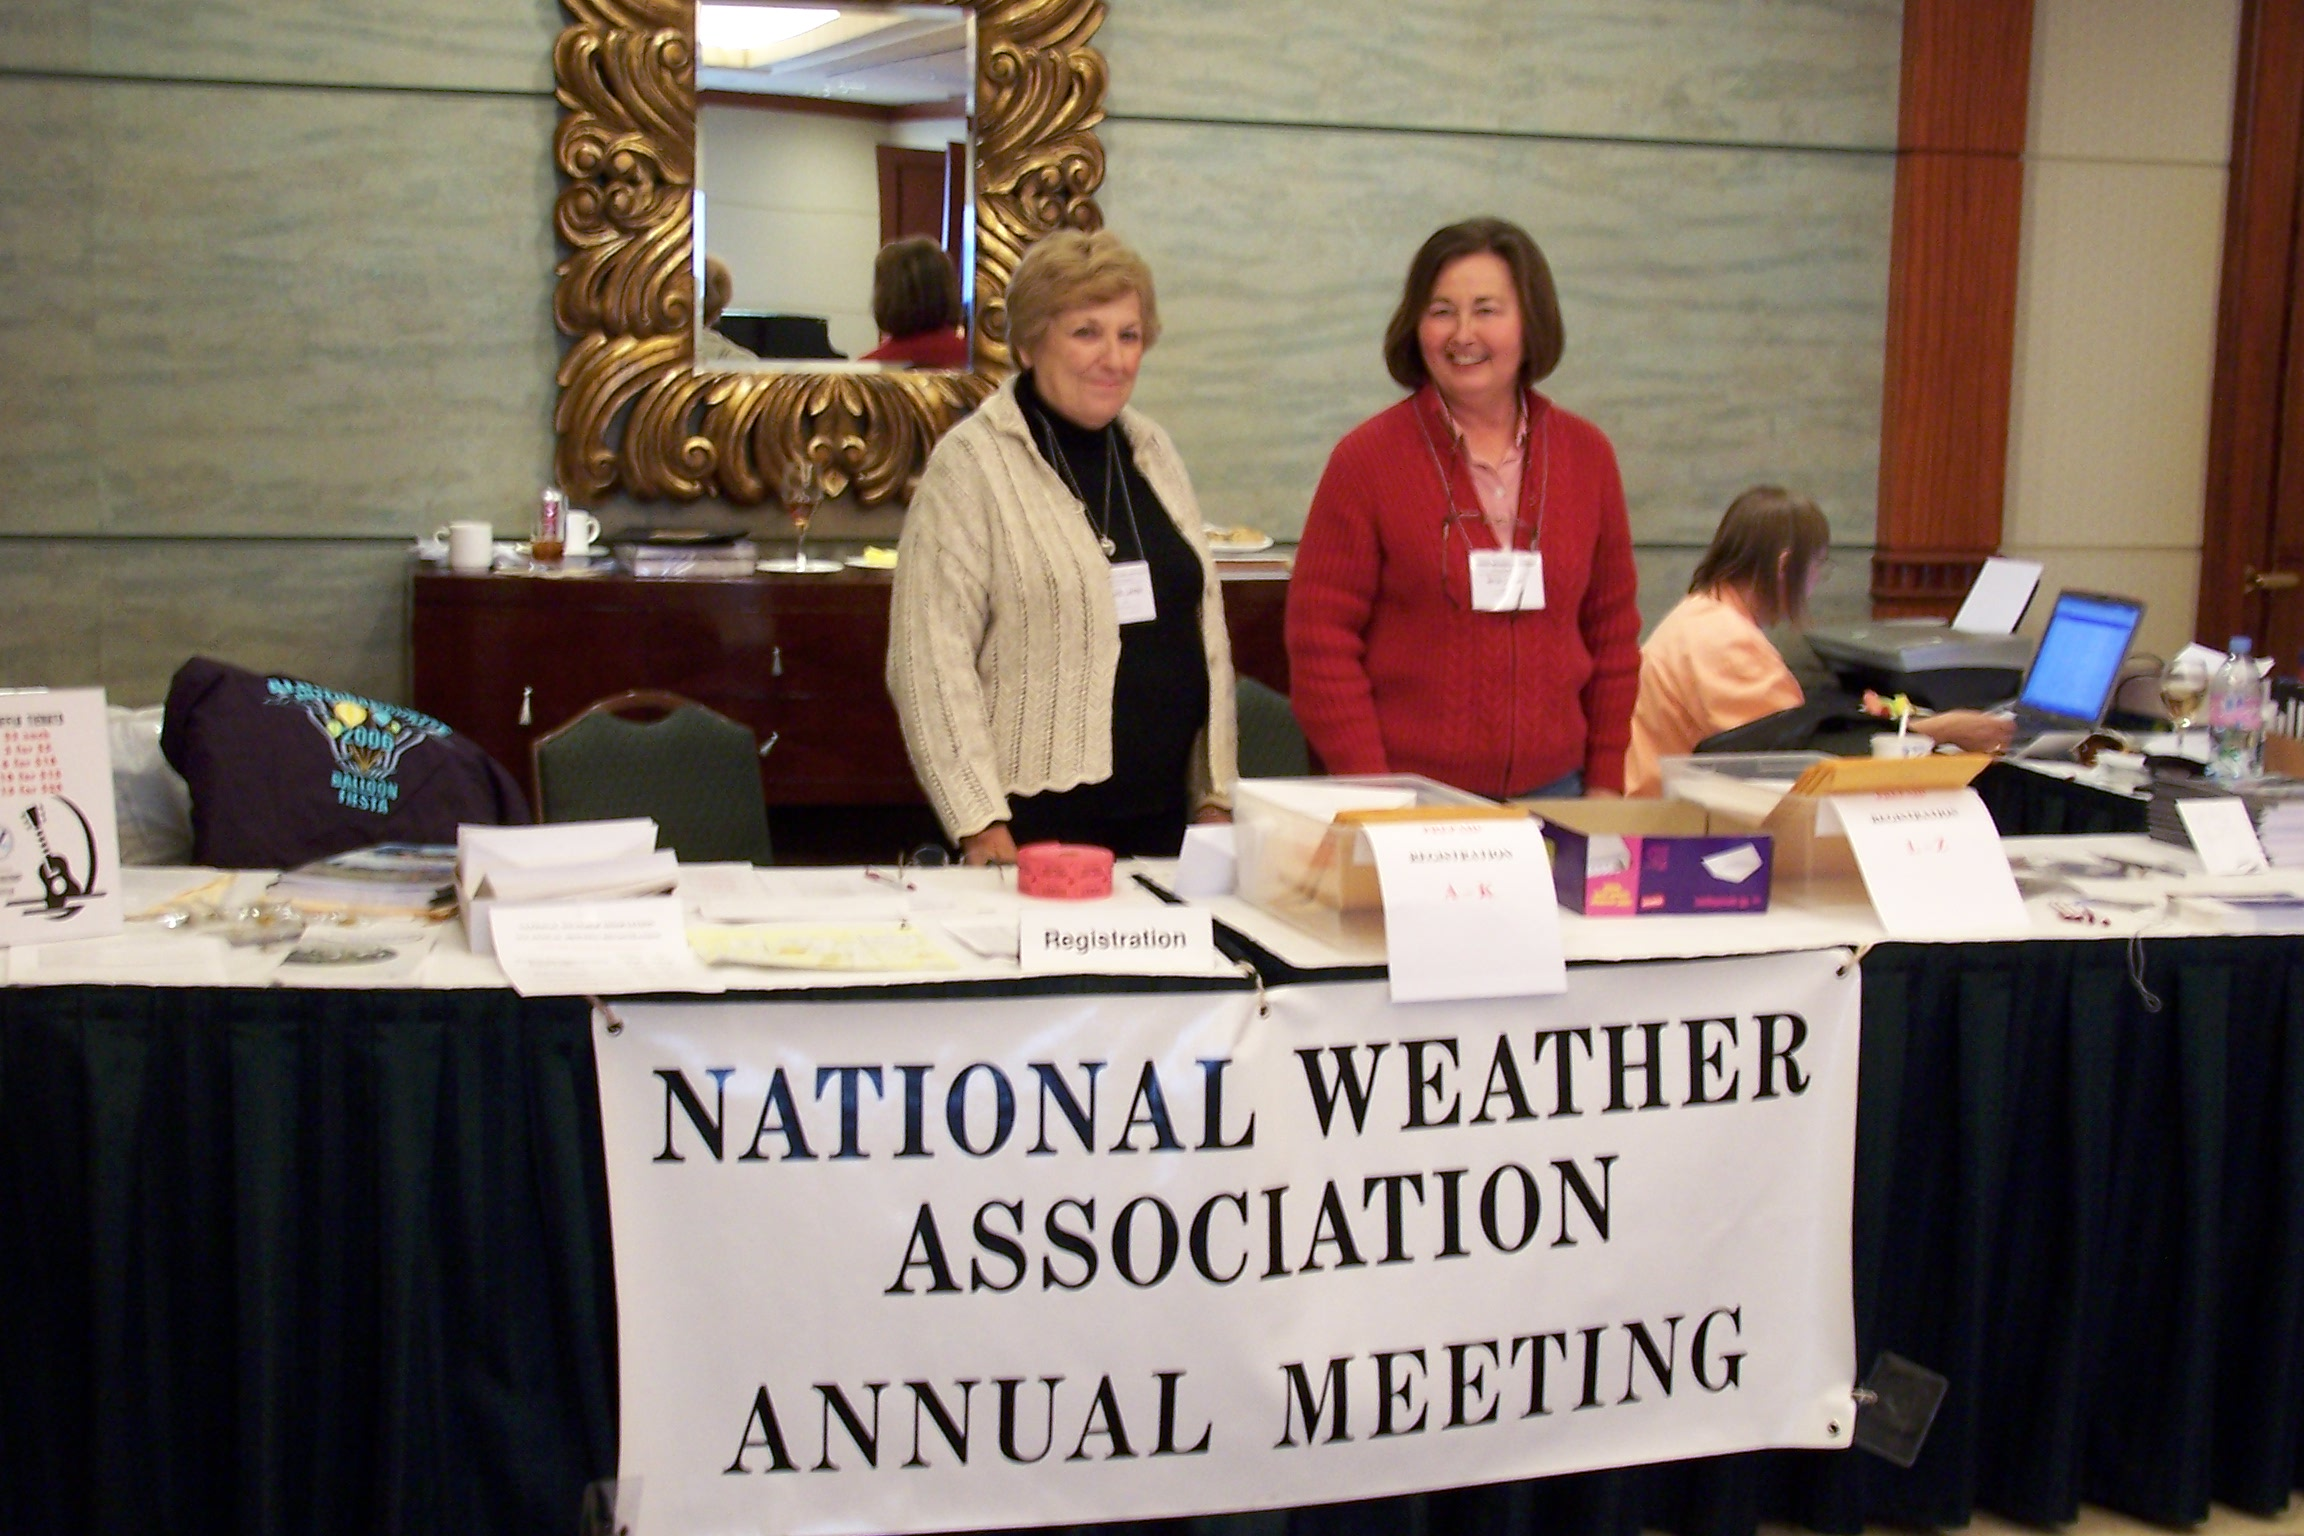 Carol Lavin stationed at a registration desk during an NWA Annual Meeting.